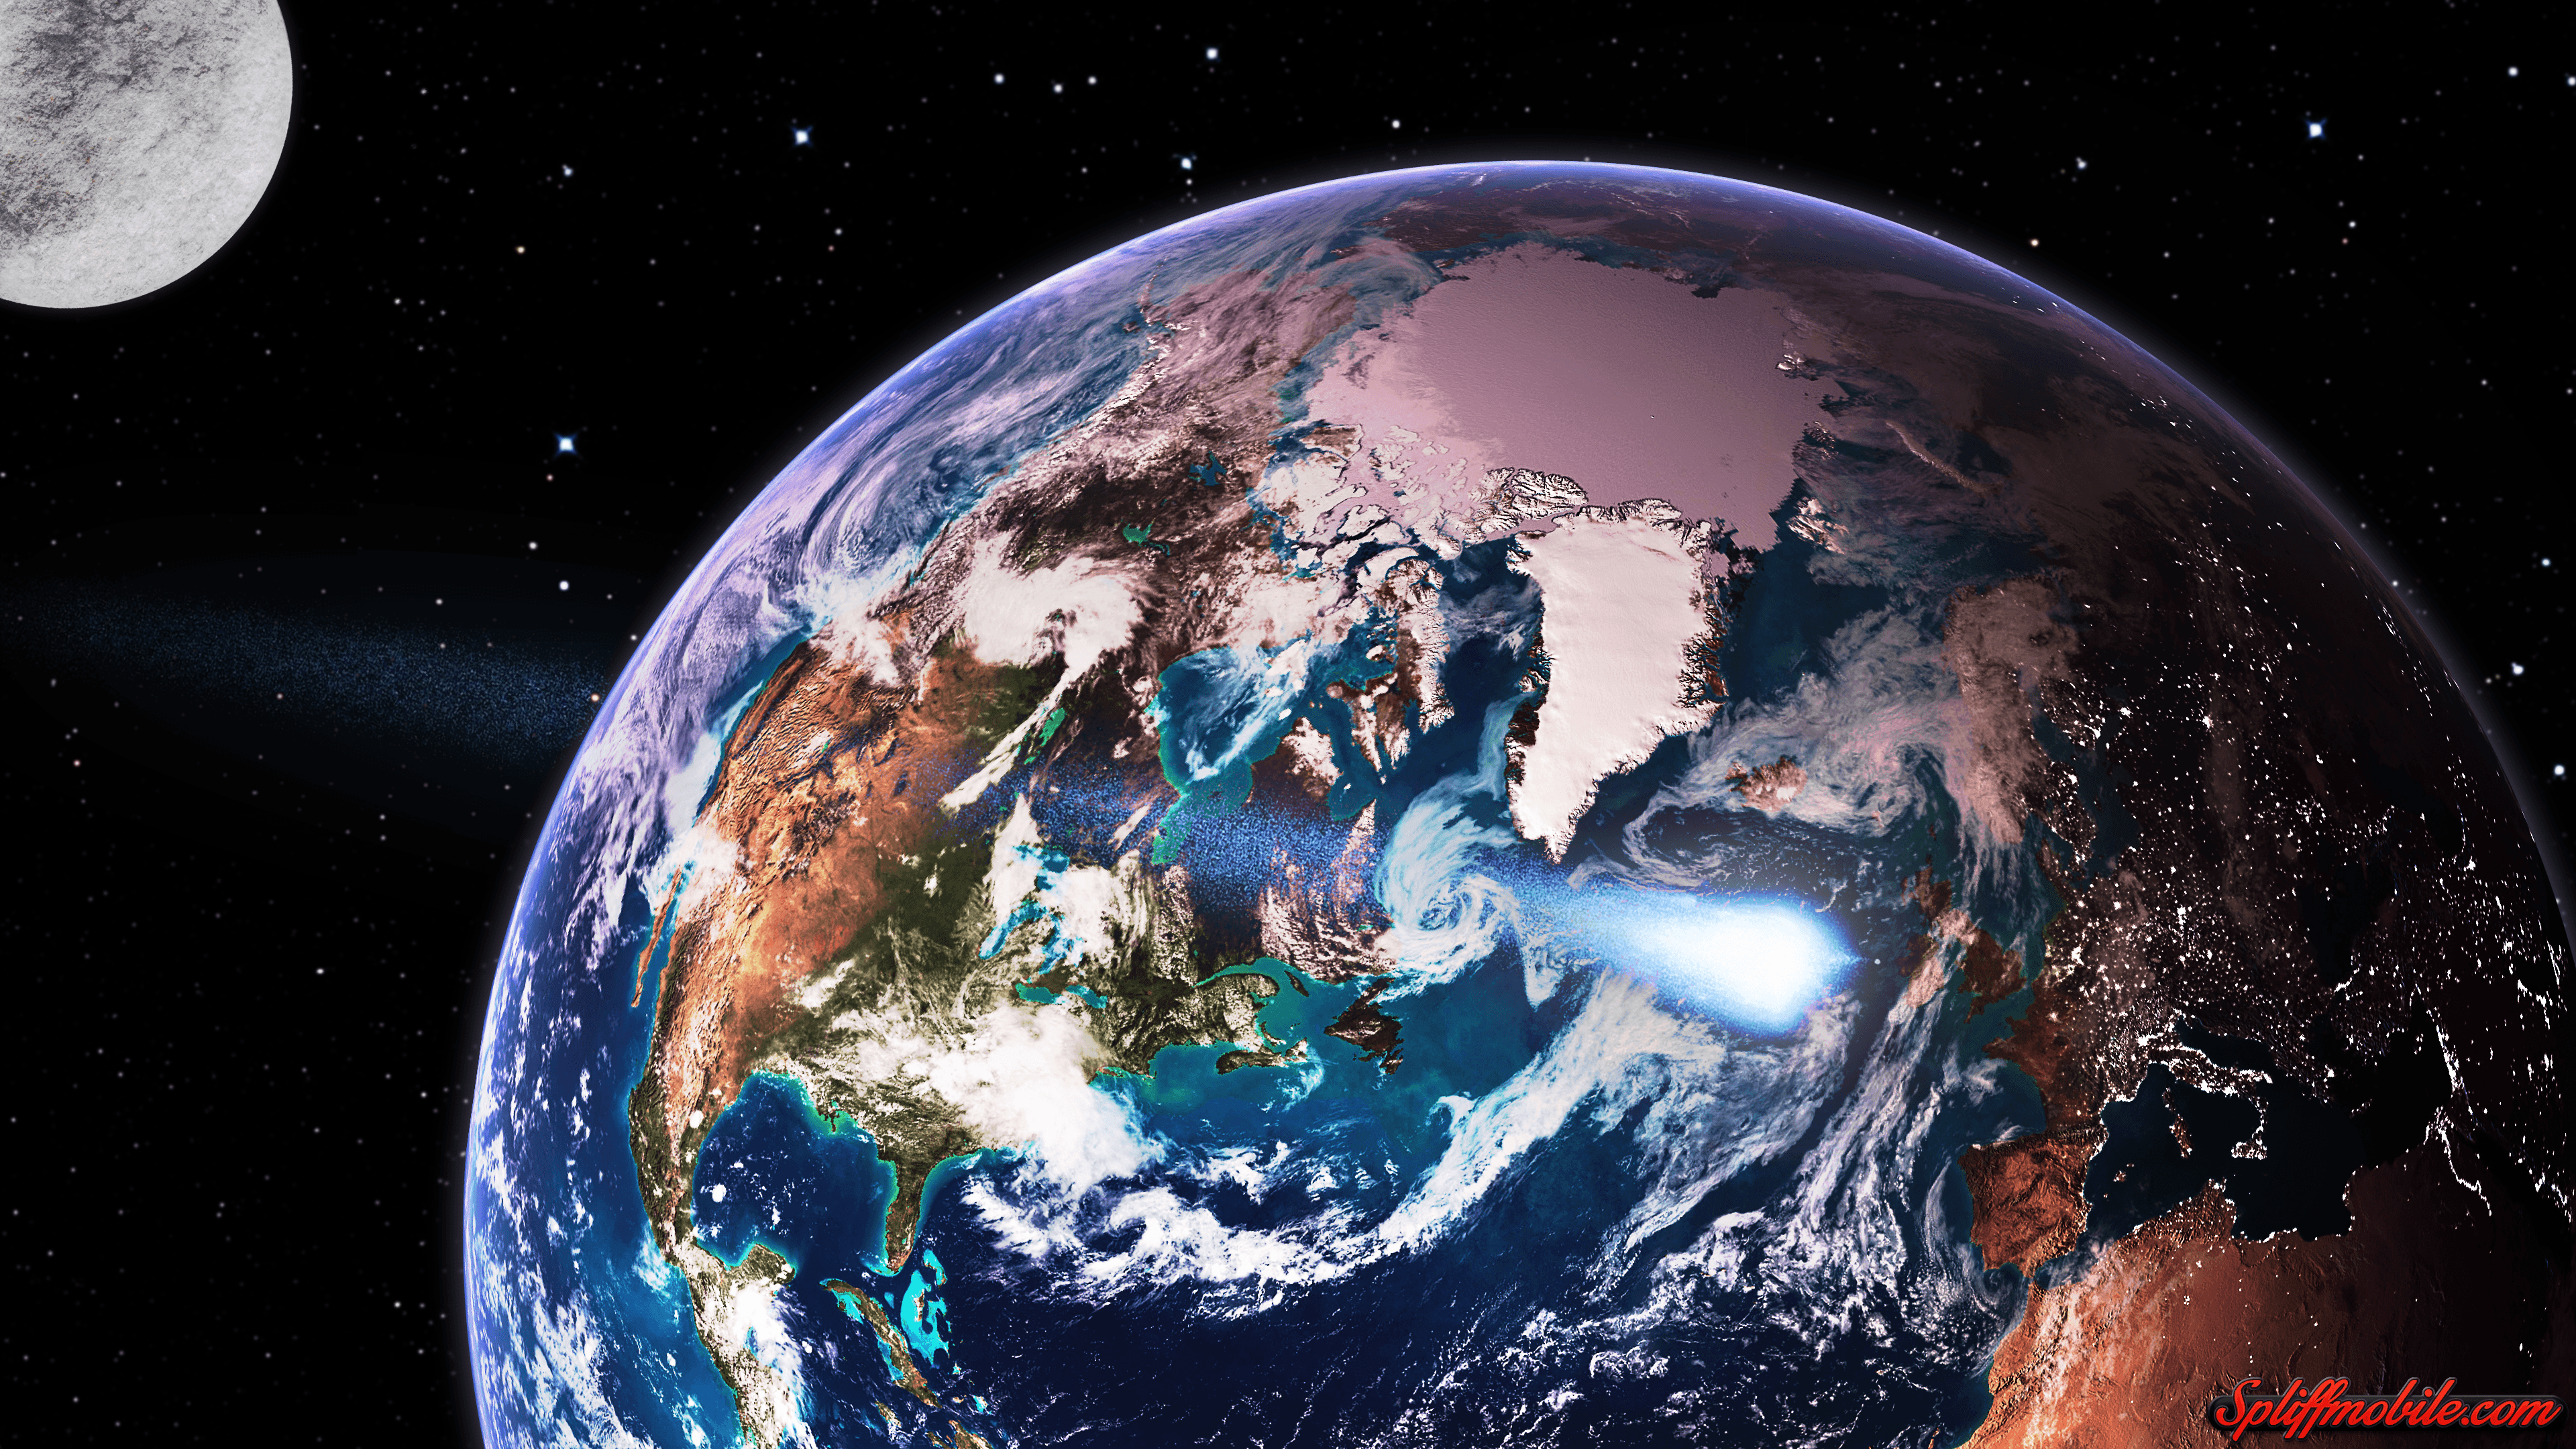 4k earth wallpapers top free 4k earth backgrounds - Earth hd images from space ...